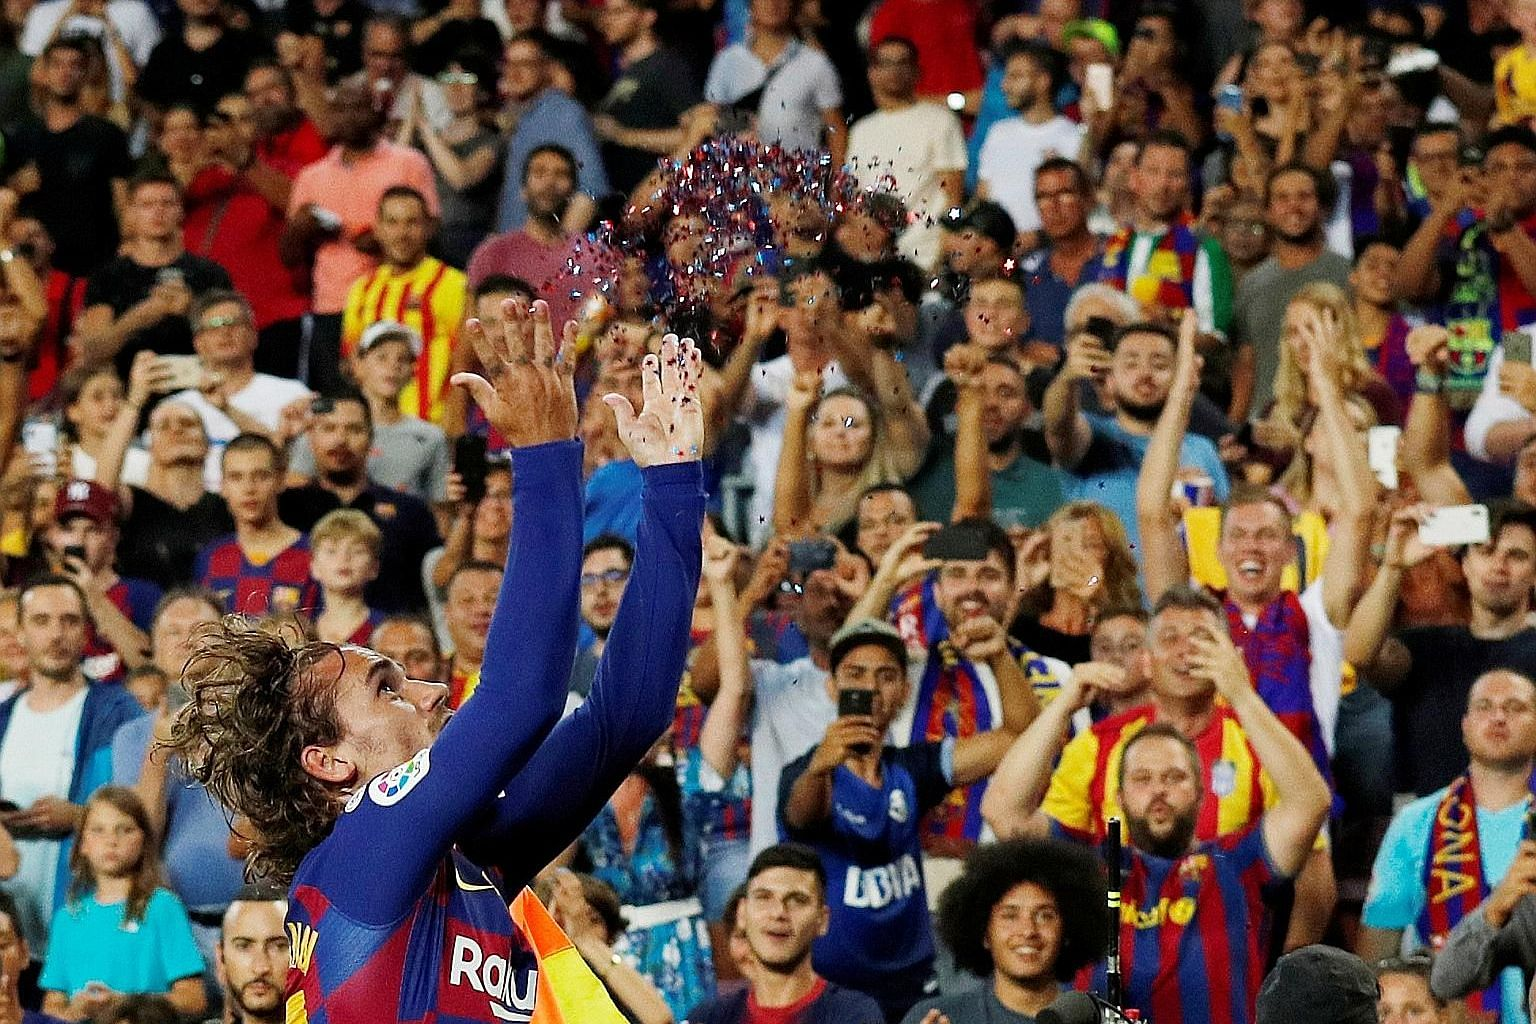 Barcelona forward Antoine Griezmann throwing glitter in the air before spreading his arms LeBron James-style to celebrate his second goal in the 5-2 rout of Real Betis on Sunday. PHOTO: REUTERS